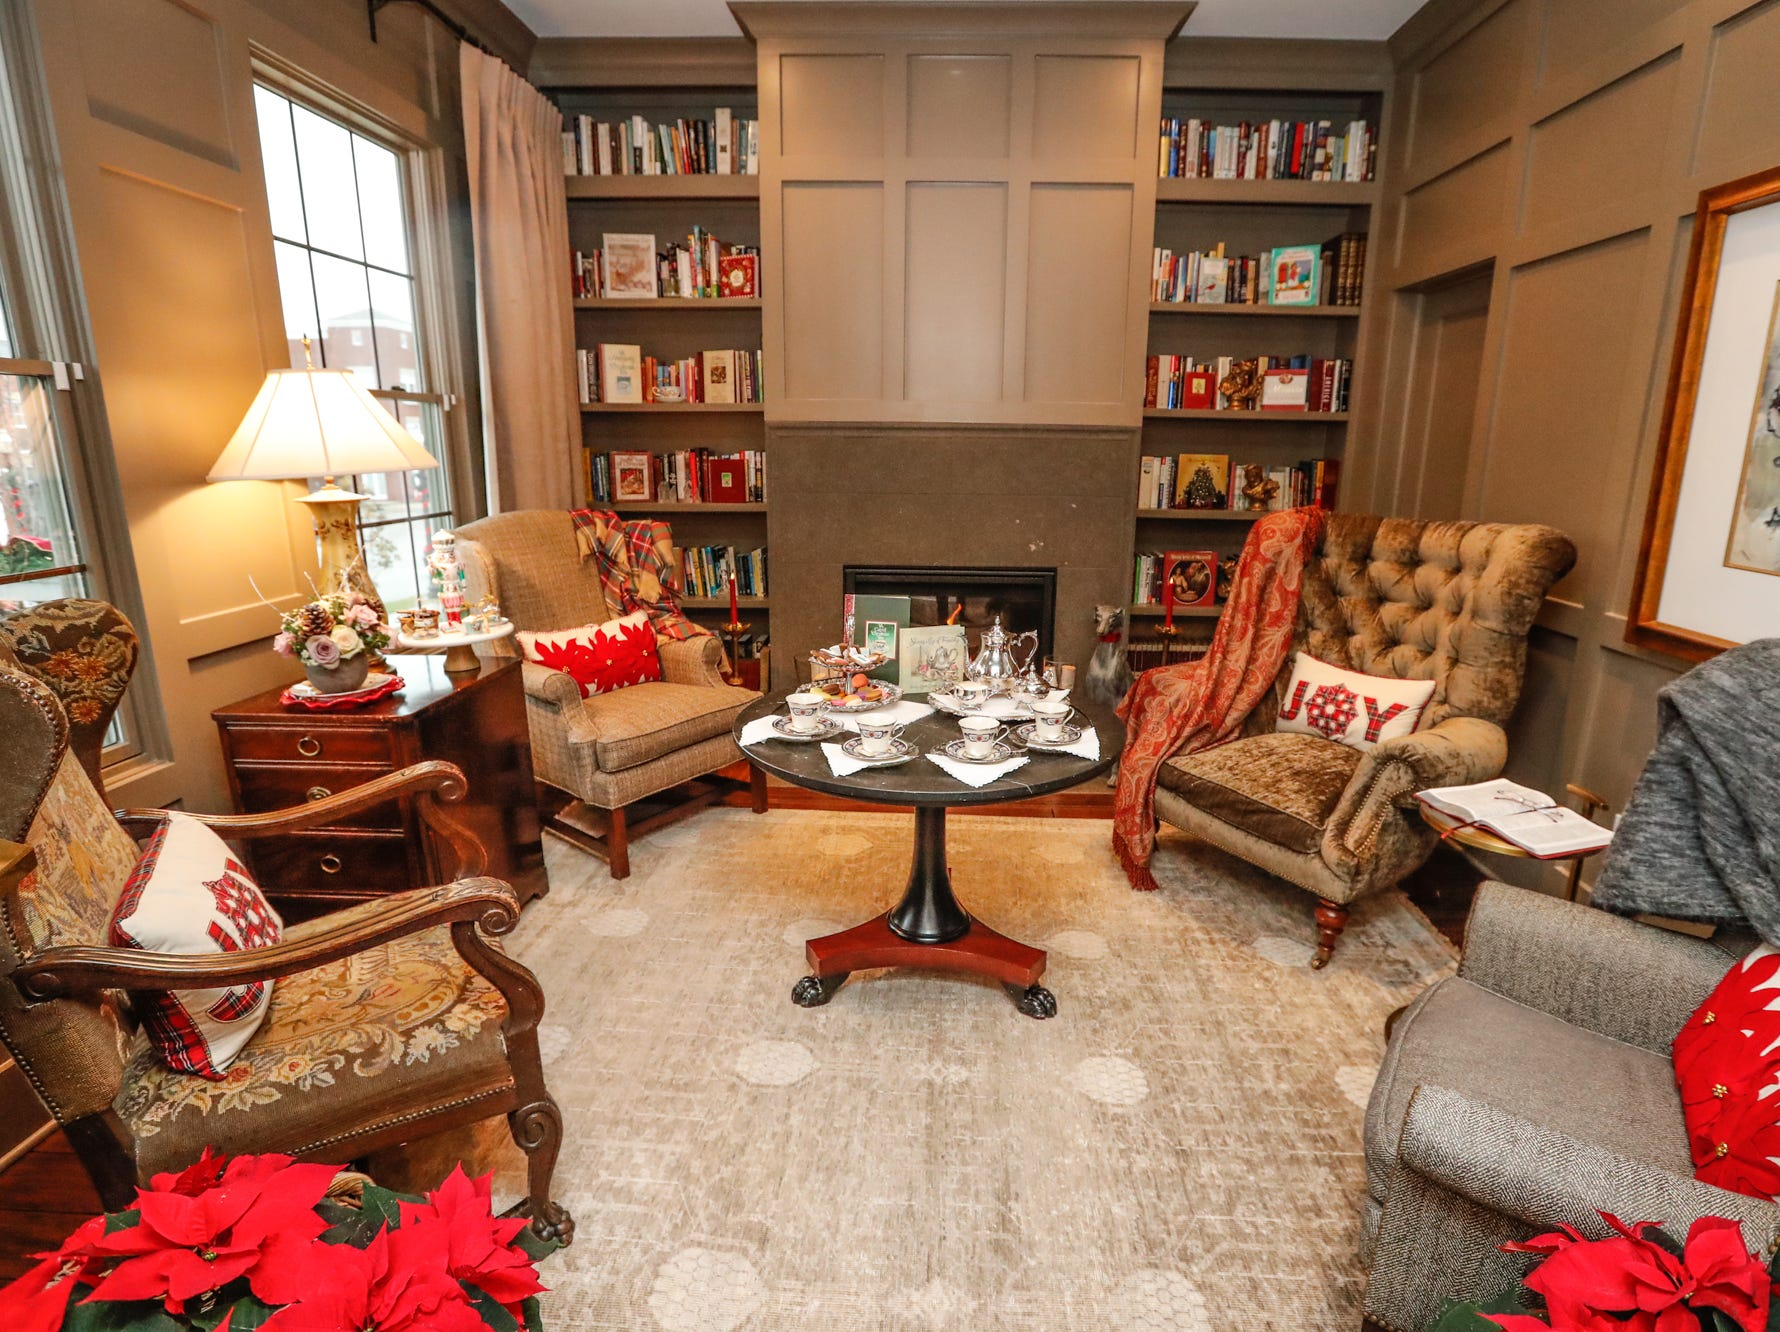 The contemporary plantation-style home belonging to Lezlie and Terry Heath features a library decked out for Christmas during the Carmel Clay Historical Society Holiday Home Tour in Carmel Ind. on Saturday, Dec.1, 2018. The couple's son, Craig Heath, helped to design the home.